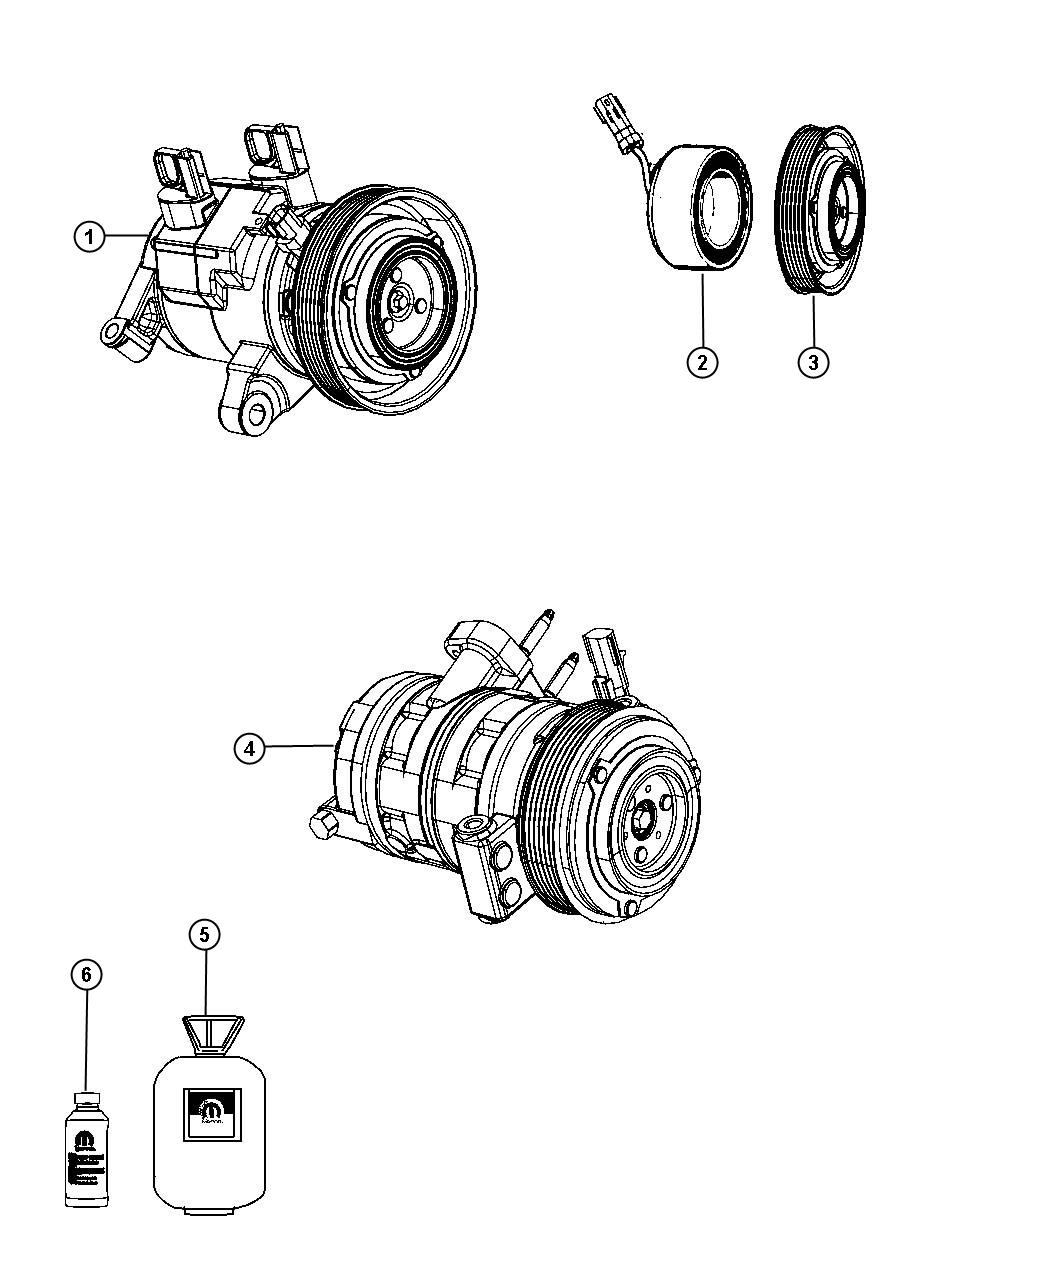 A C Thermostat Wiring Diagram